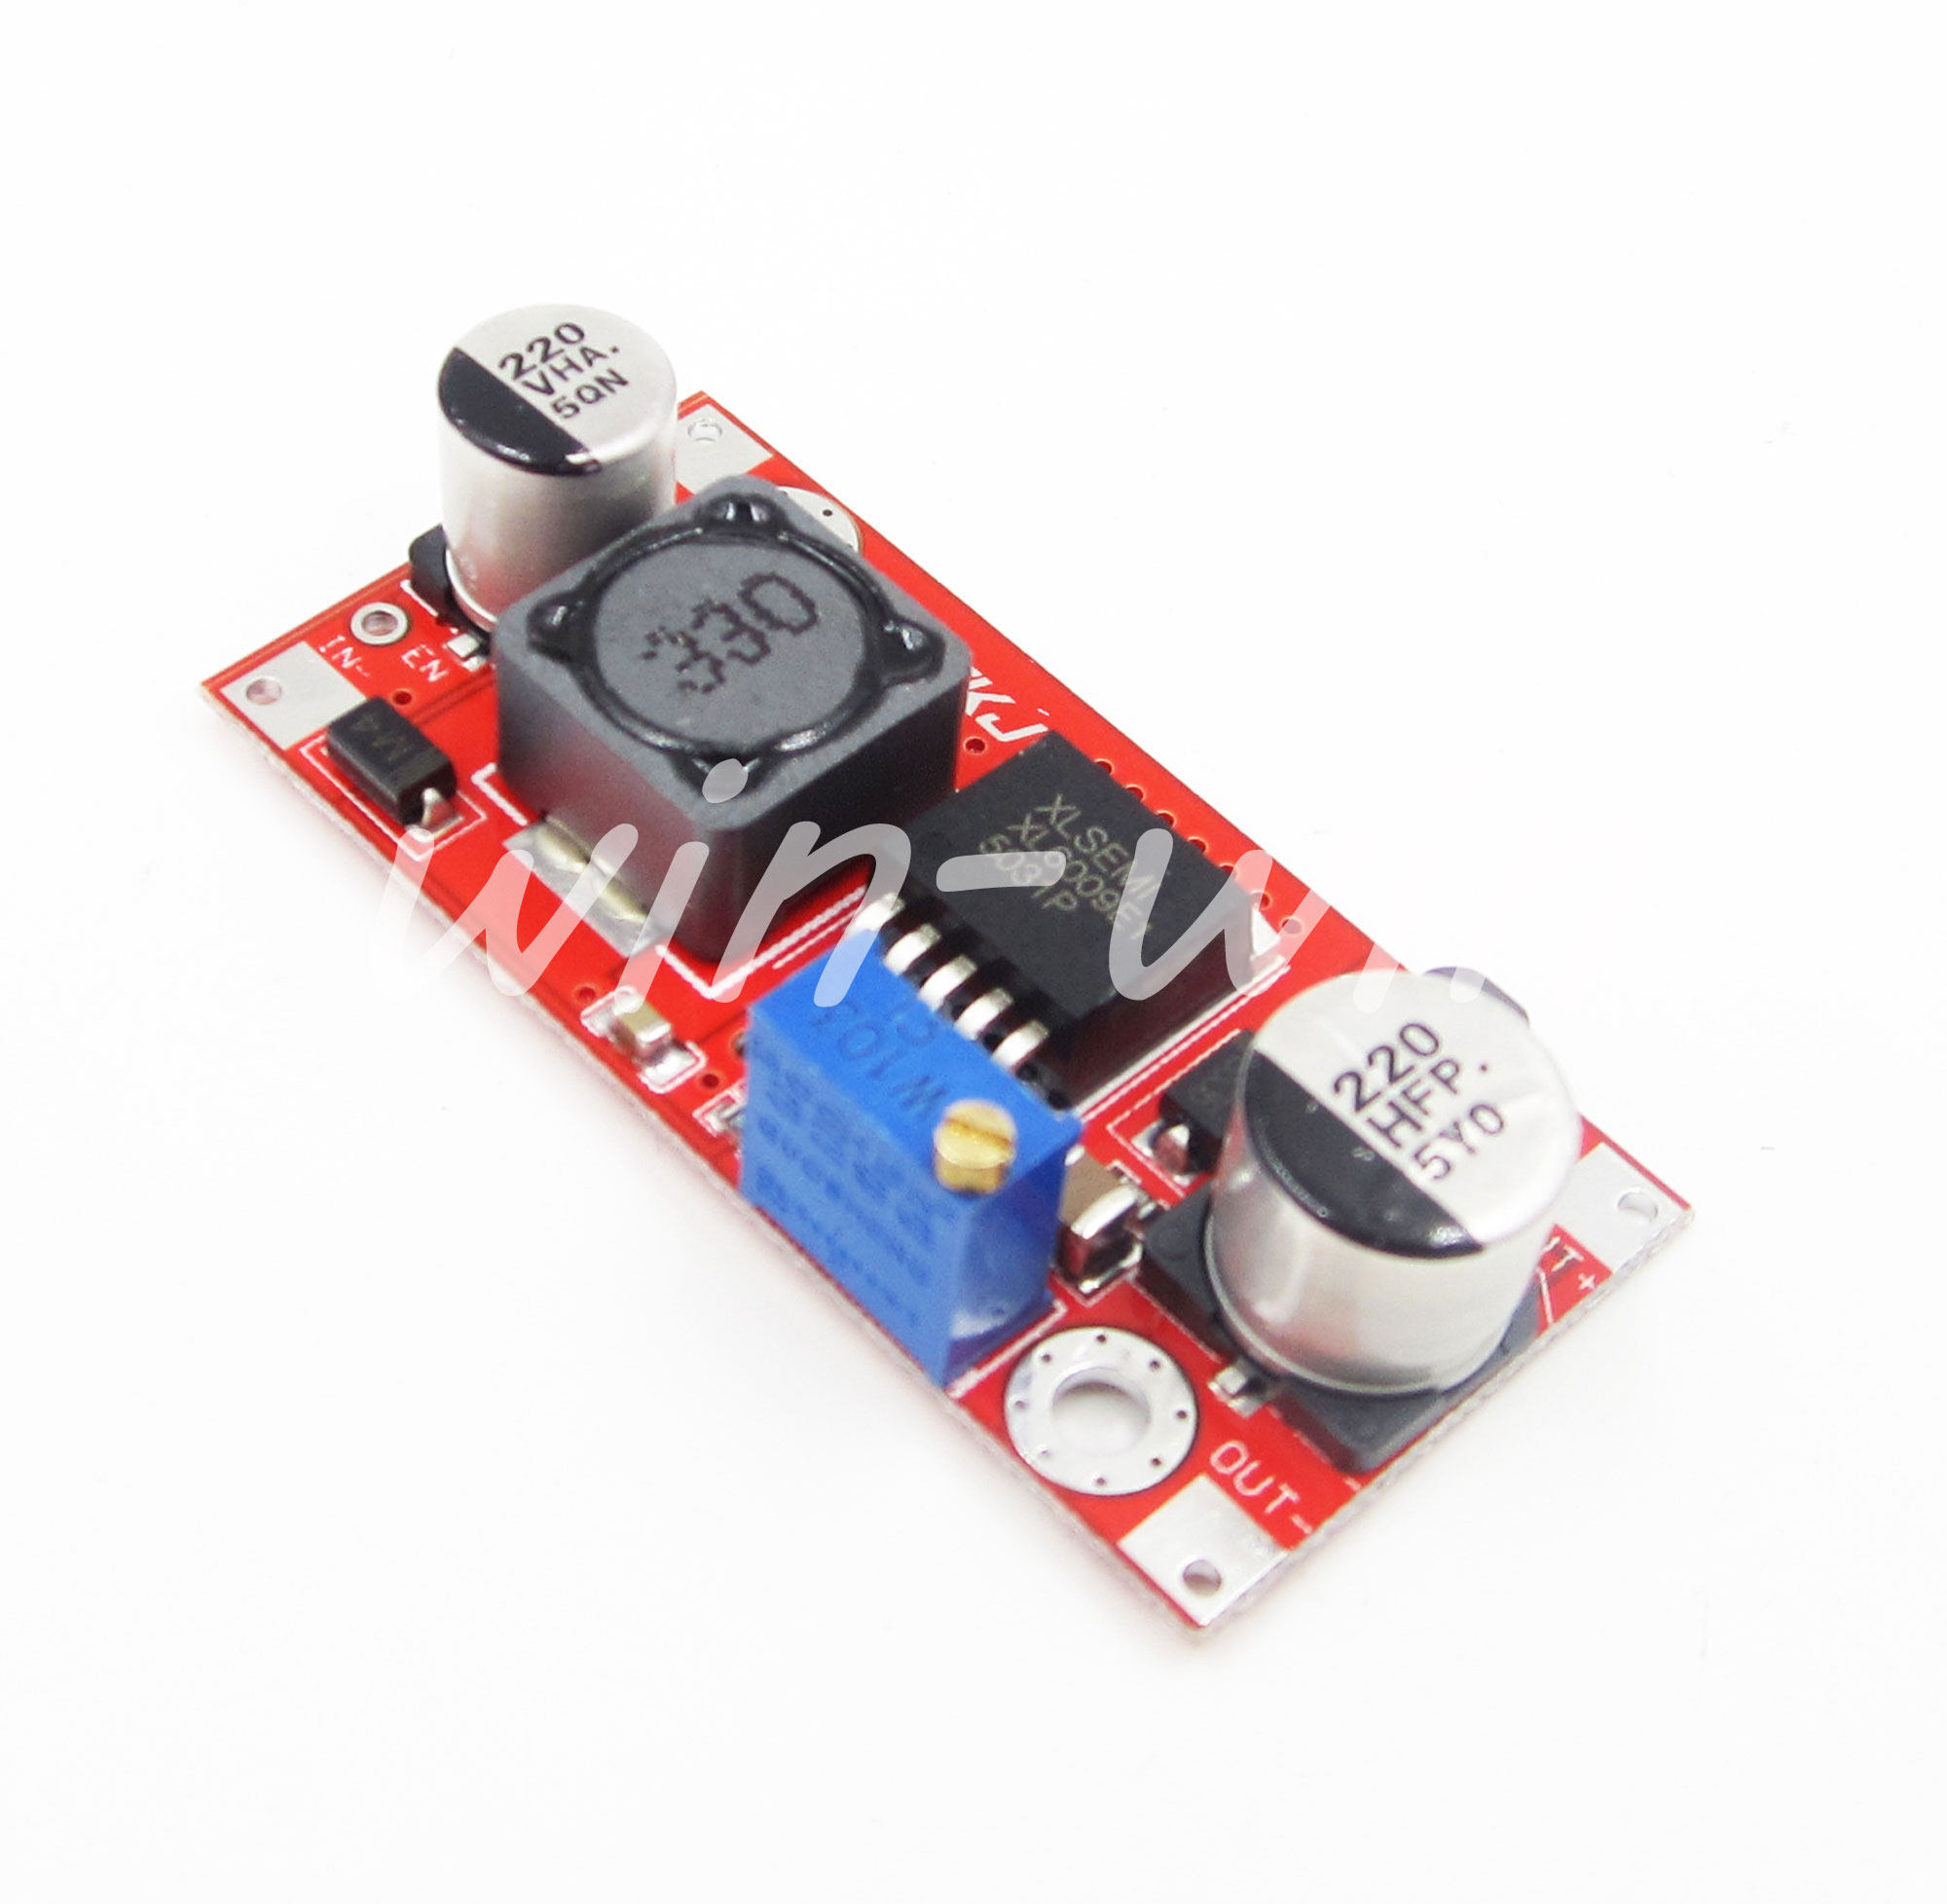 Xl6009 Boost Converter Step Up Adjustable 15w 5 32v To 50v Dc Circuit Power Module Replace Lm2577 Supply